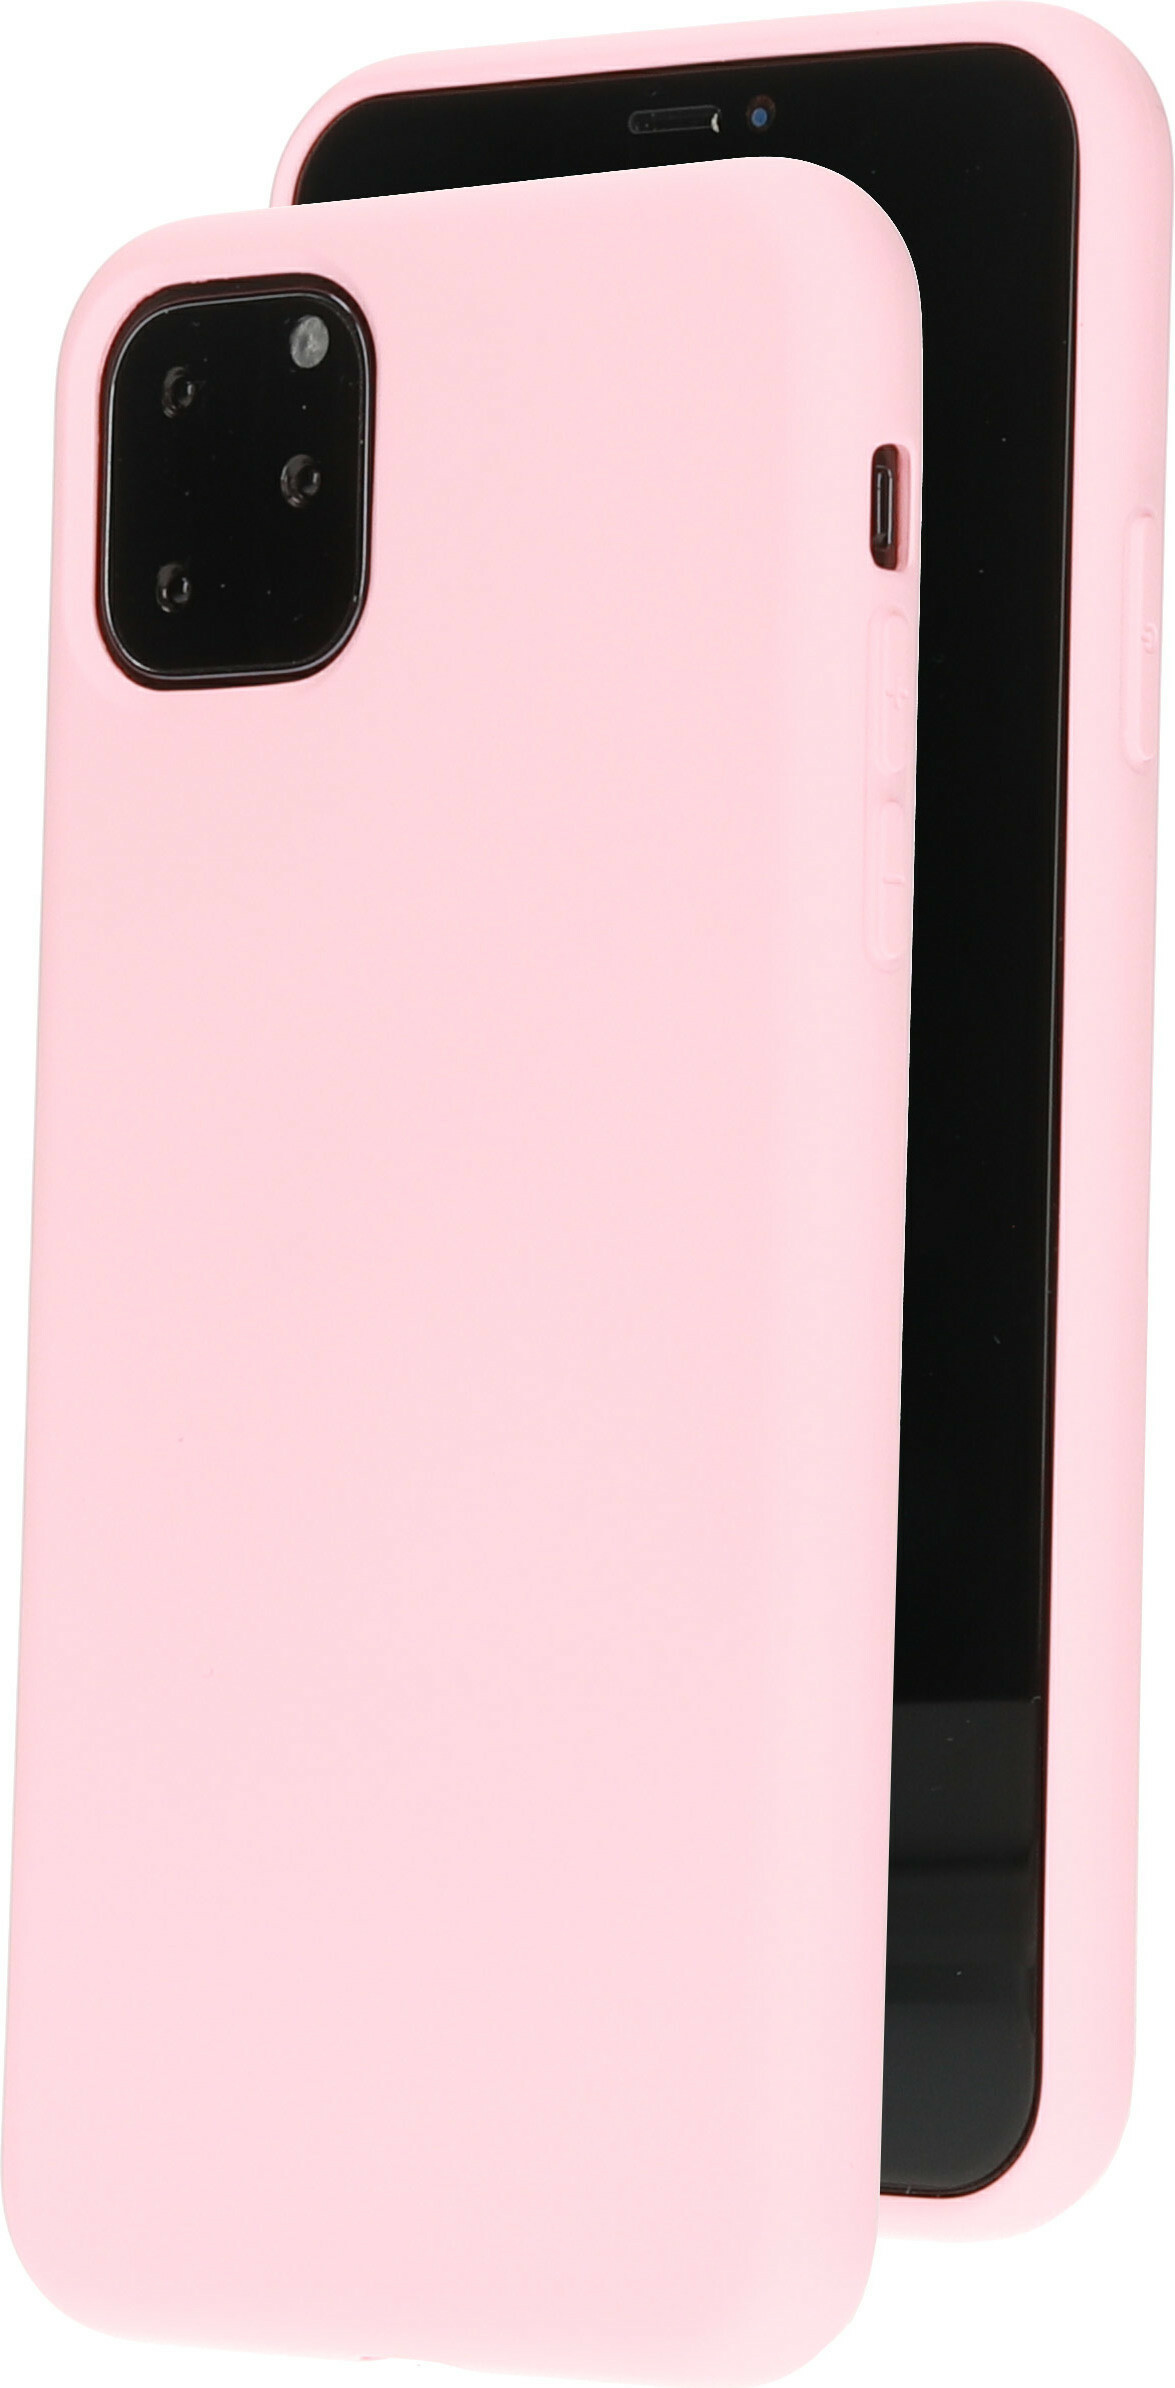 Mobiparts Silicone Cover Apple iPhone 11 Pro Max Blossom Pink